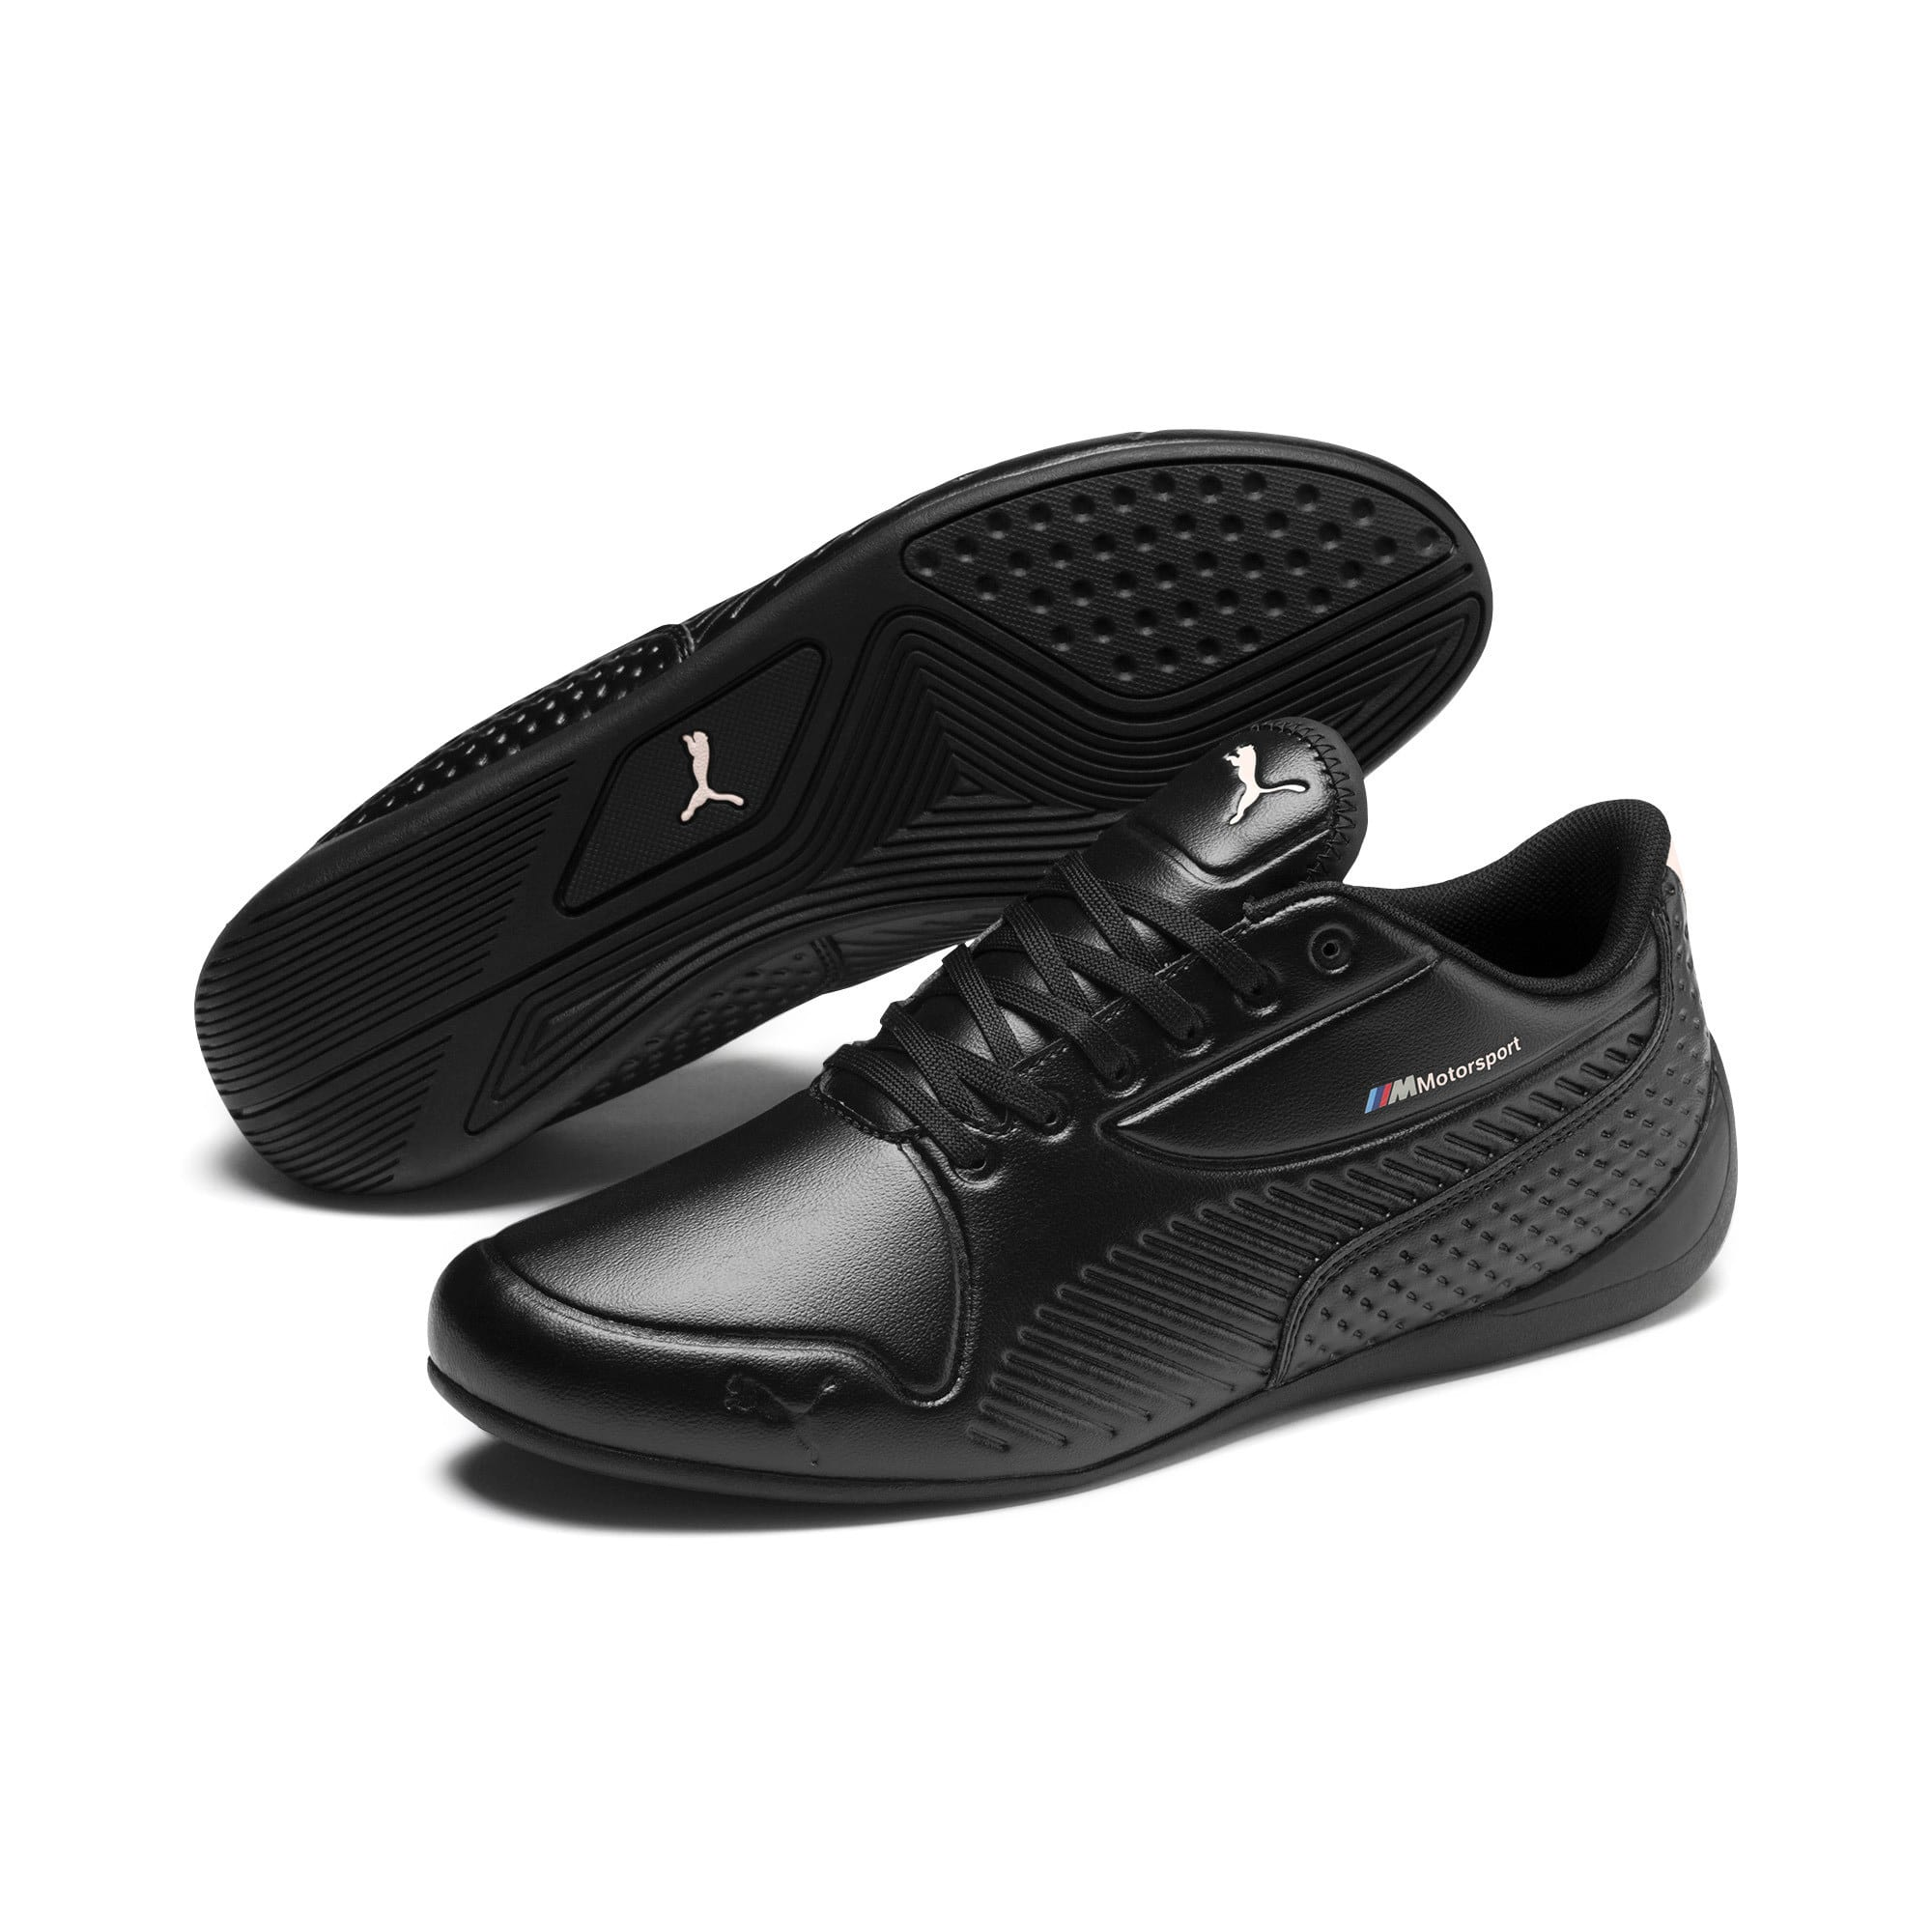 Thumbnail 3 of BMW MMS ドリフトキャット 7S ウルトラ スニーカー, Puma Black-Puma White, medium-JPN